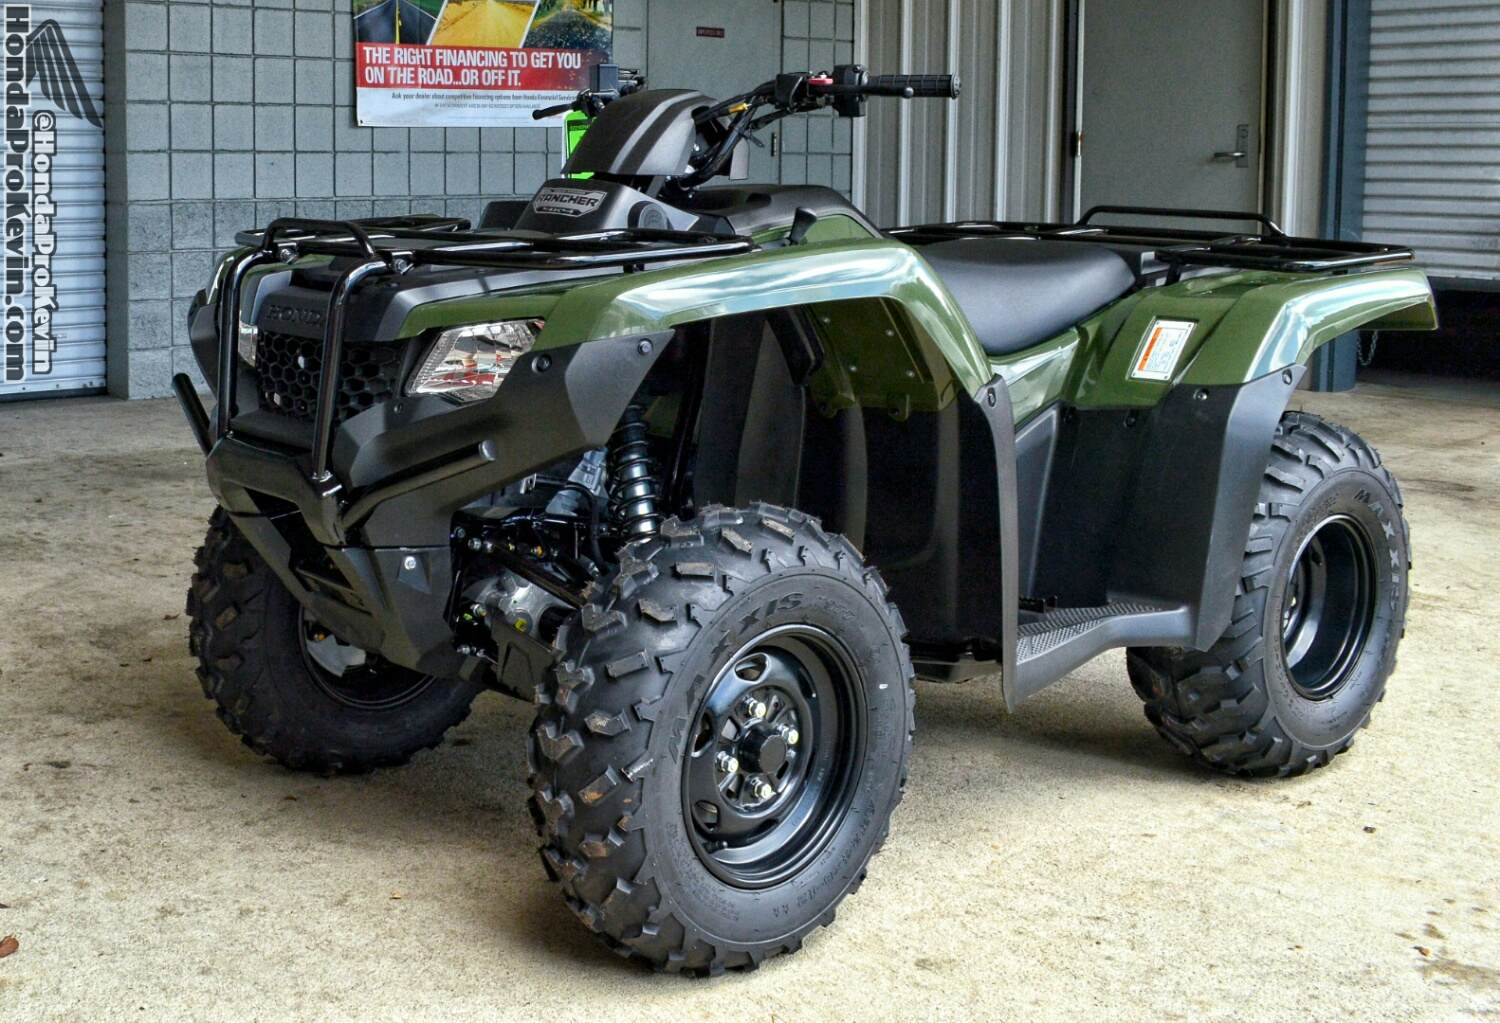 Honda 350 ATV Engine Diagram Wiring Library. 2019 Honda Rancher Es 420 ATV Review Specs Four Wheeler Buyer's Guide. Honda. Es Parts Foreman Honda Diagramfrontaxel At Scoala.co